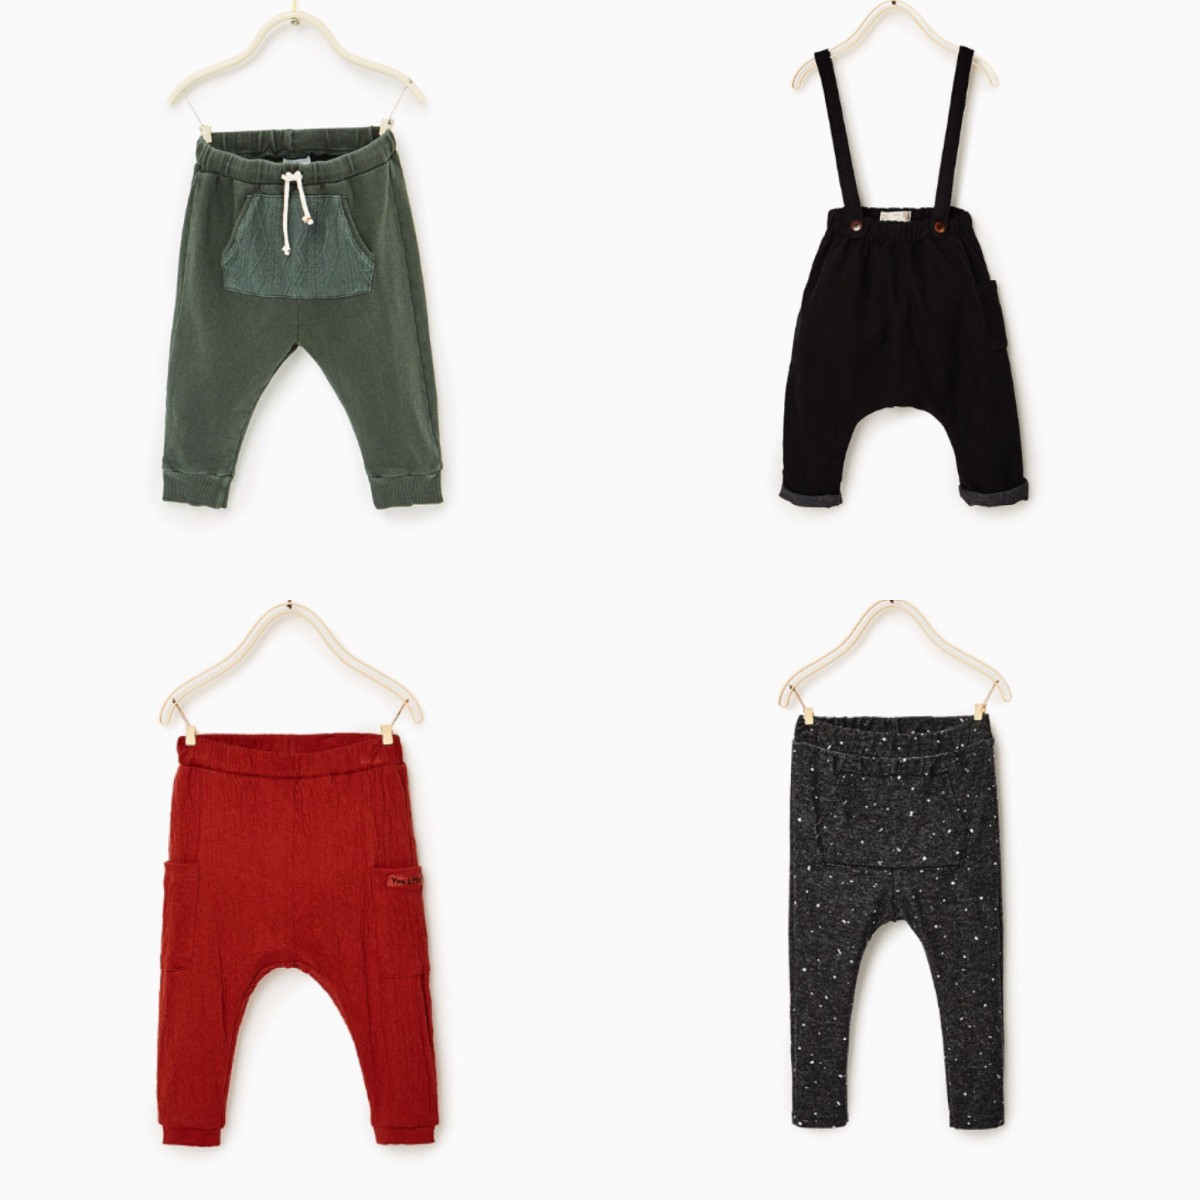 283521a9791 Clockwise from top left: Trousers with a Knit Pocket £8.99, Lined Trousers  with Straps £19.99, Leggings with Print £6.99, Crepe Trousers £8.99